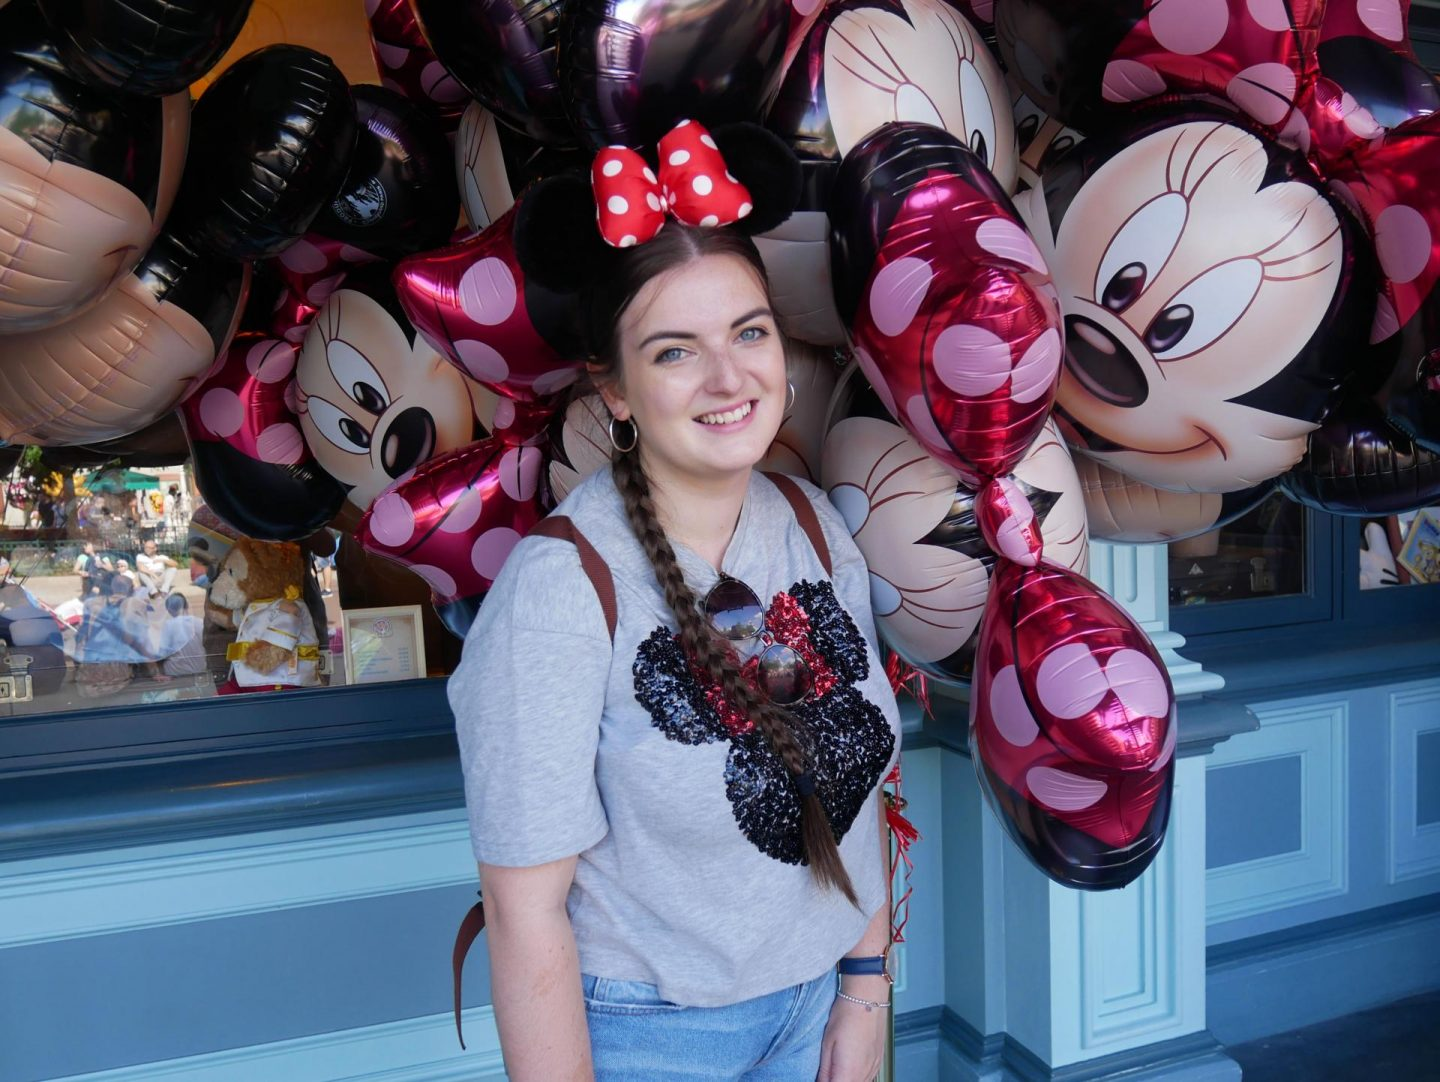 disneyland-paris-my-22nd-birthday-trip-rachel-nicole-uk-travel-disney-blogger-2